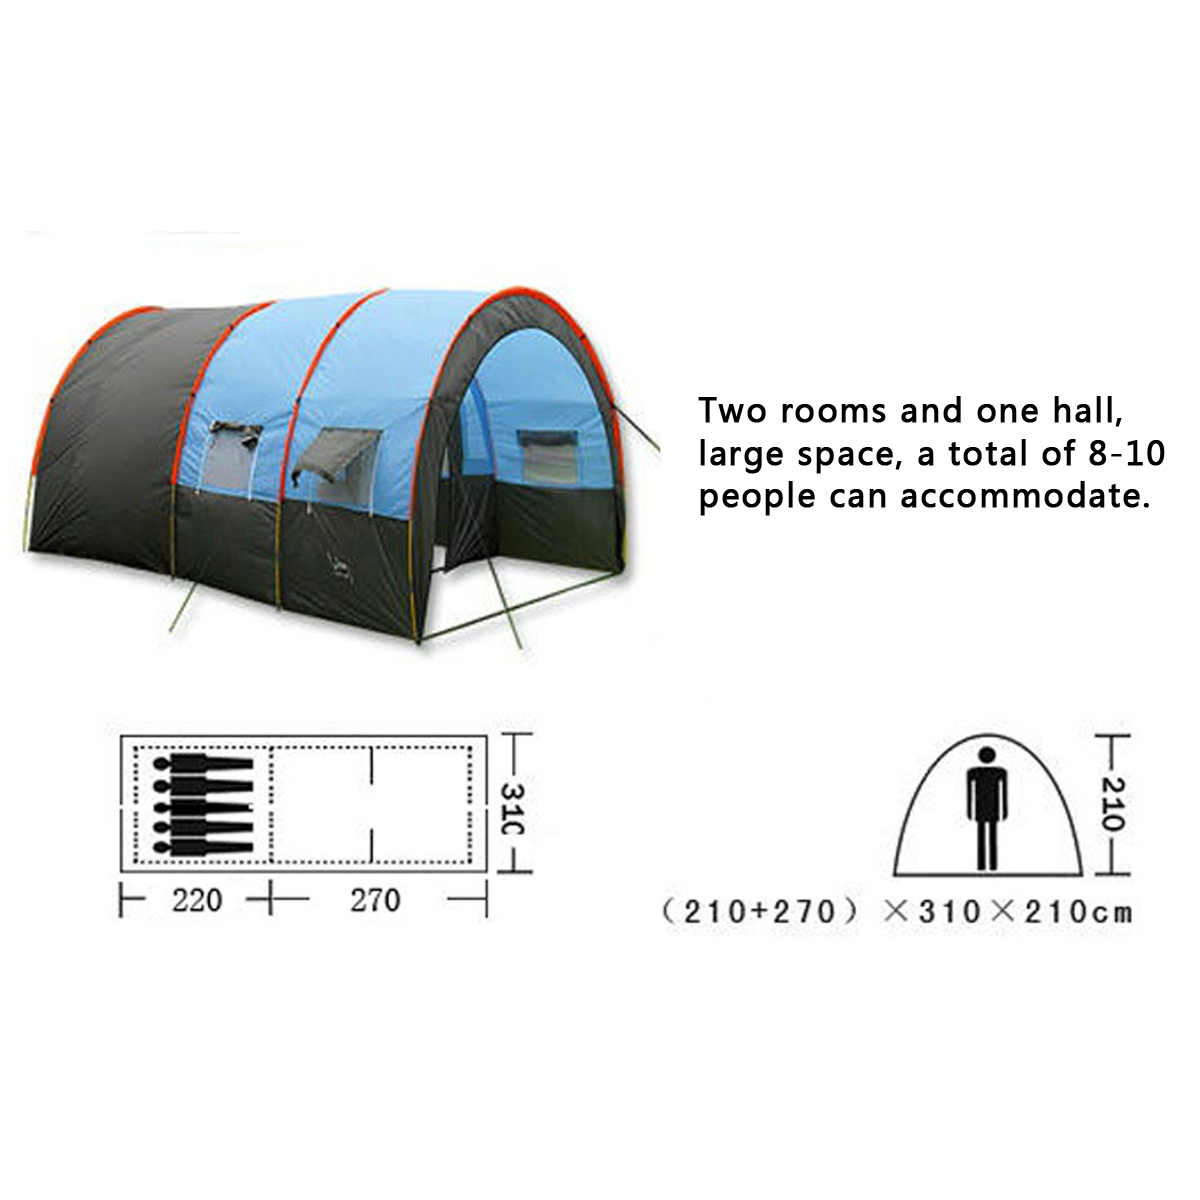 8-10 Person Big Tent Waterproof Large Room Family Tent Outdoor Camping Garden Party Sunshade Awning